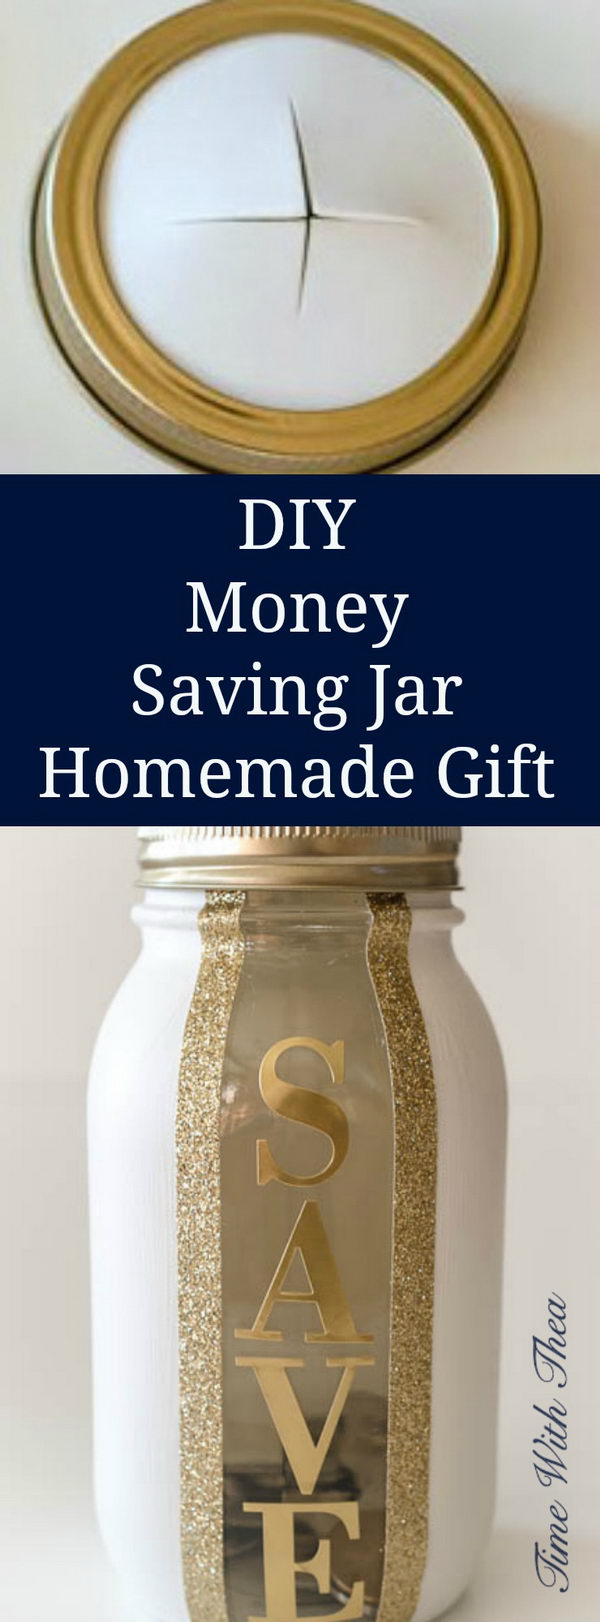 5 Easy to Make DIY Gift Ideas and Tutorials